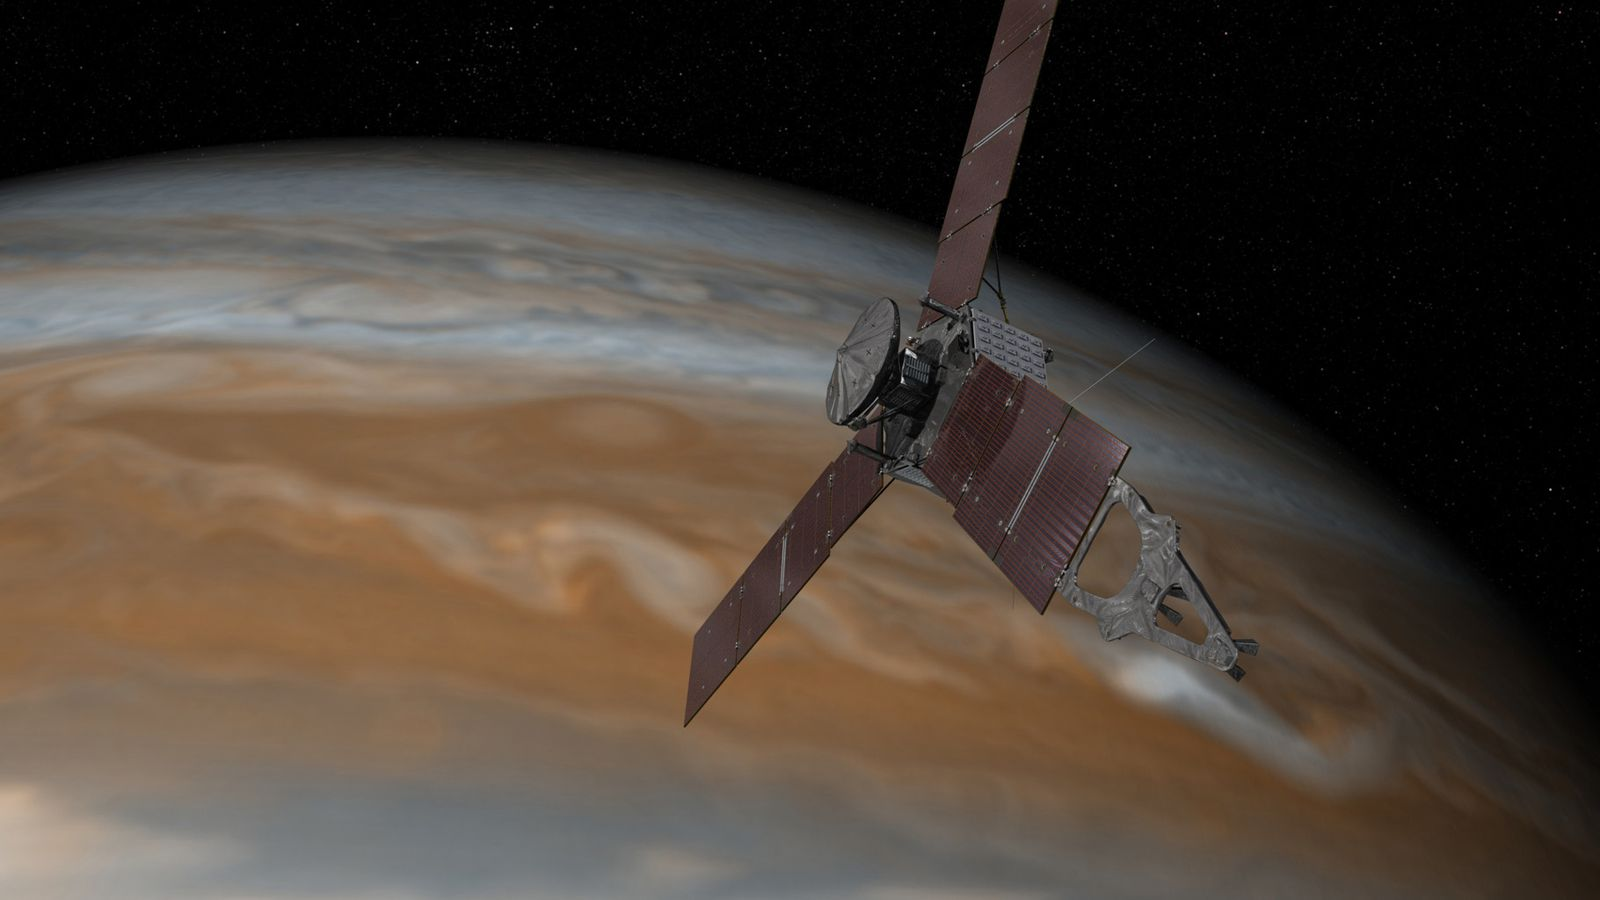 NASA's Juno mission isn't exactly going according to plan - The Verge